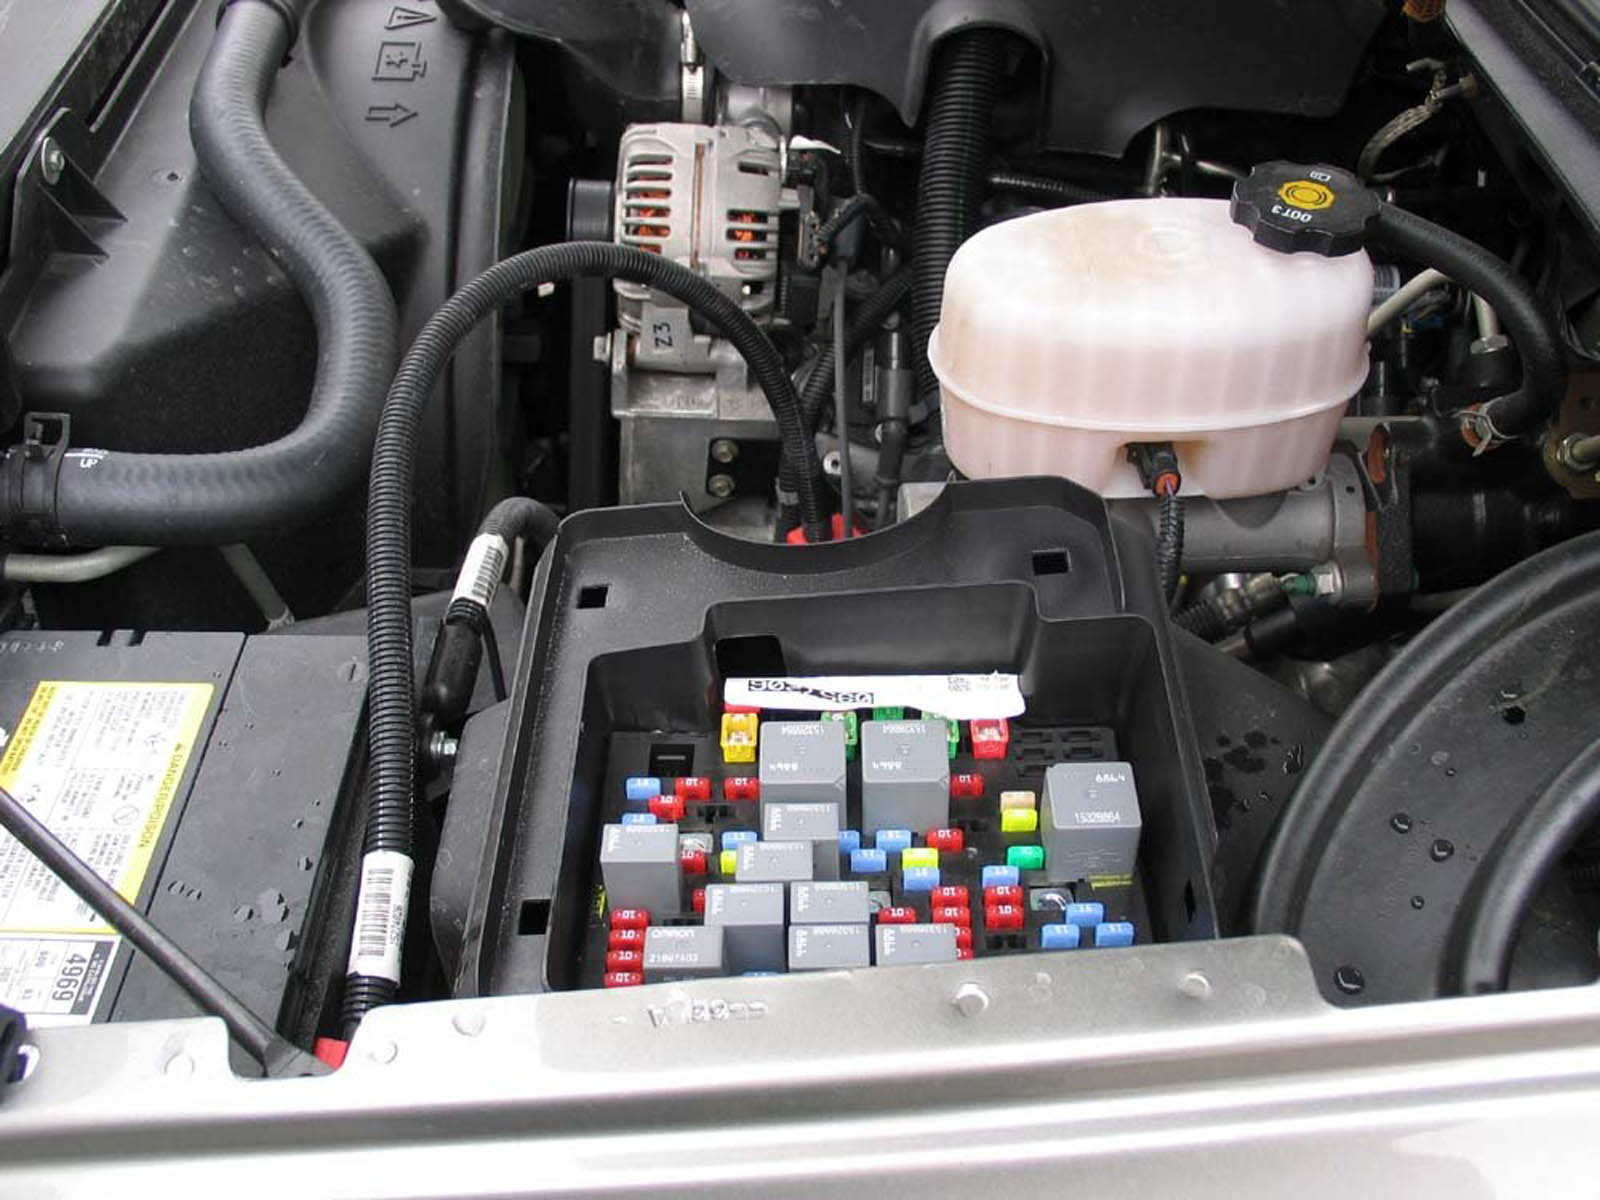 MMMay 27 Fuse Box 04 69845 chevrolet silverado gmt800 1999 2006 fuse box diagram chevroletforum 2000 chevy silverado fuse box diagram at webbmarketing.co